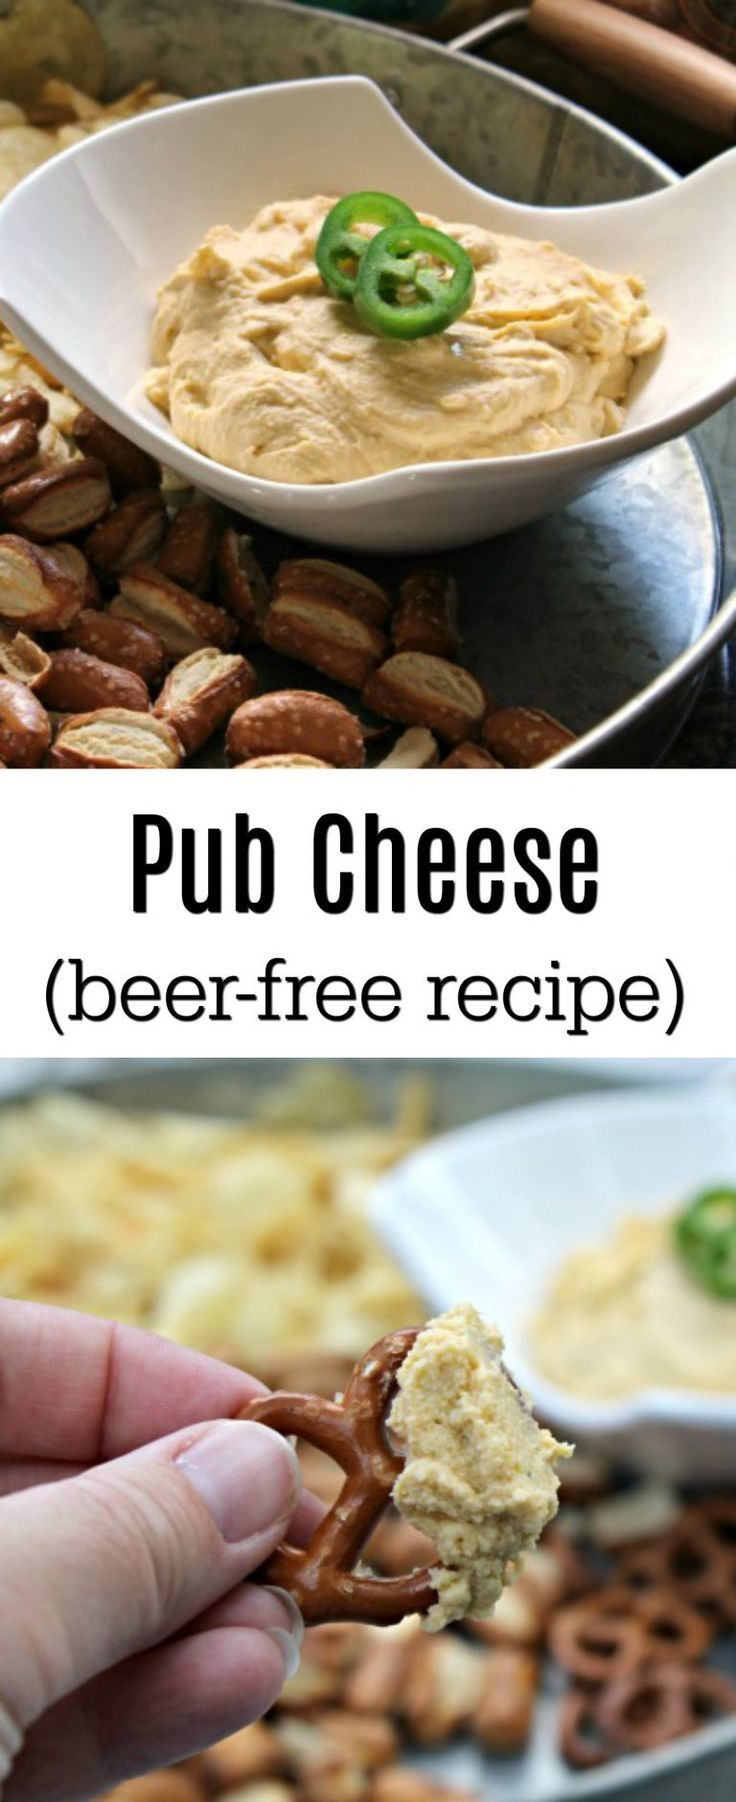 Homemade Pub Cheese (No Beer Recipe)  - A pub favorite, easily made at home for last minute entertaining.  Plus, this version is beer-free, making it okay to serve to the family! #SnackSnapShare #SnackStories #ad